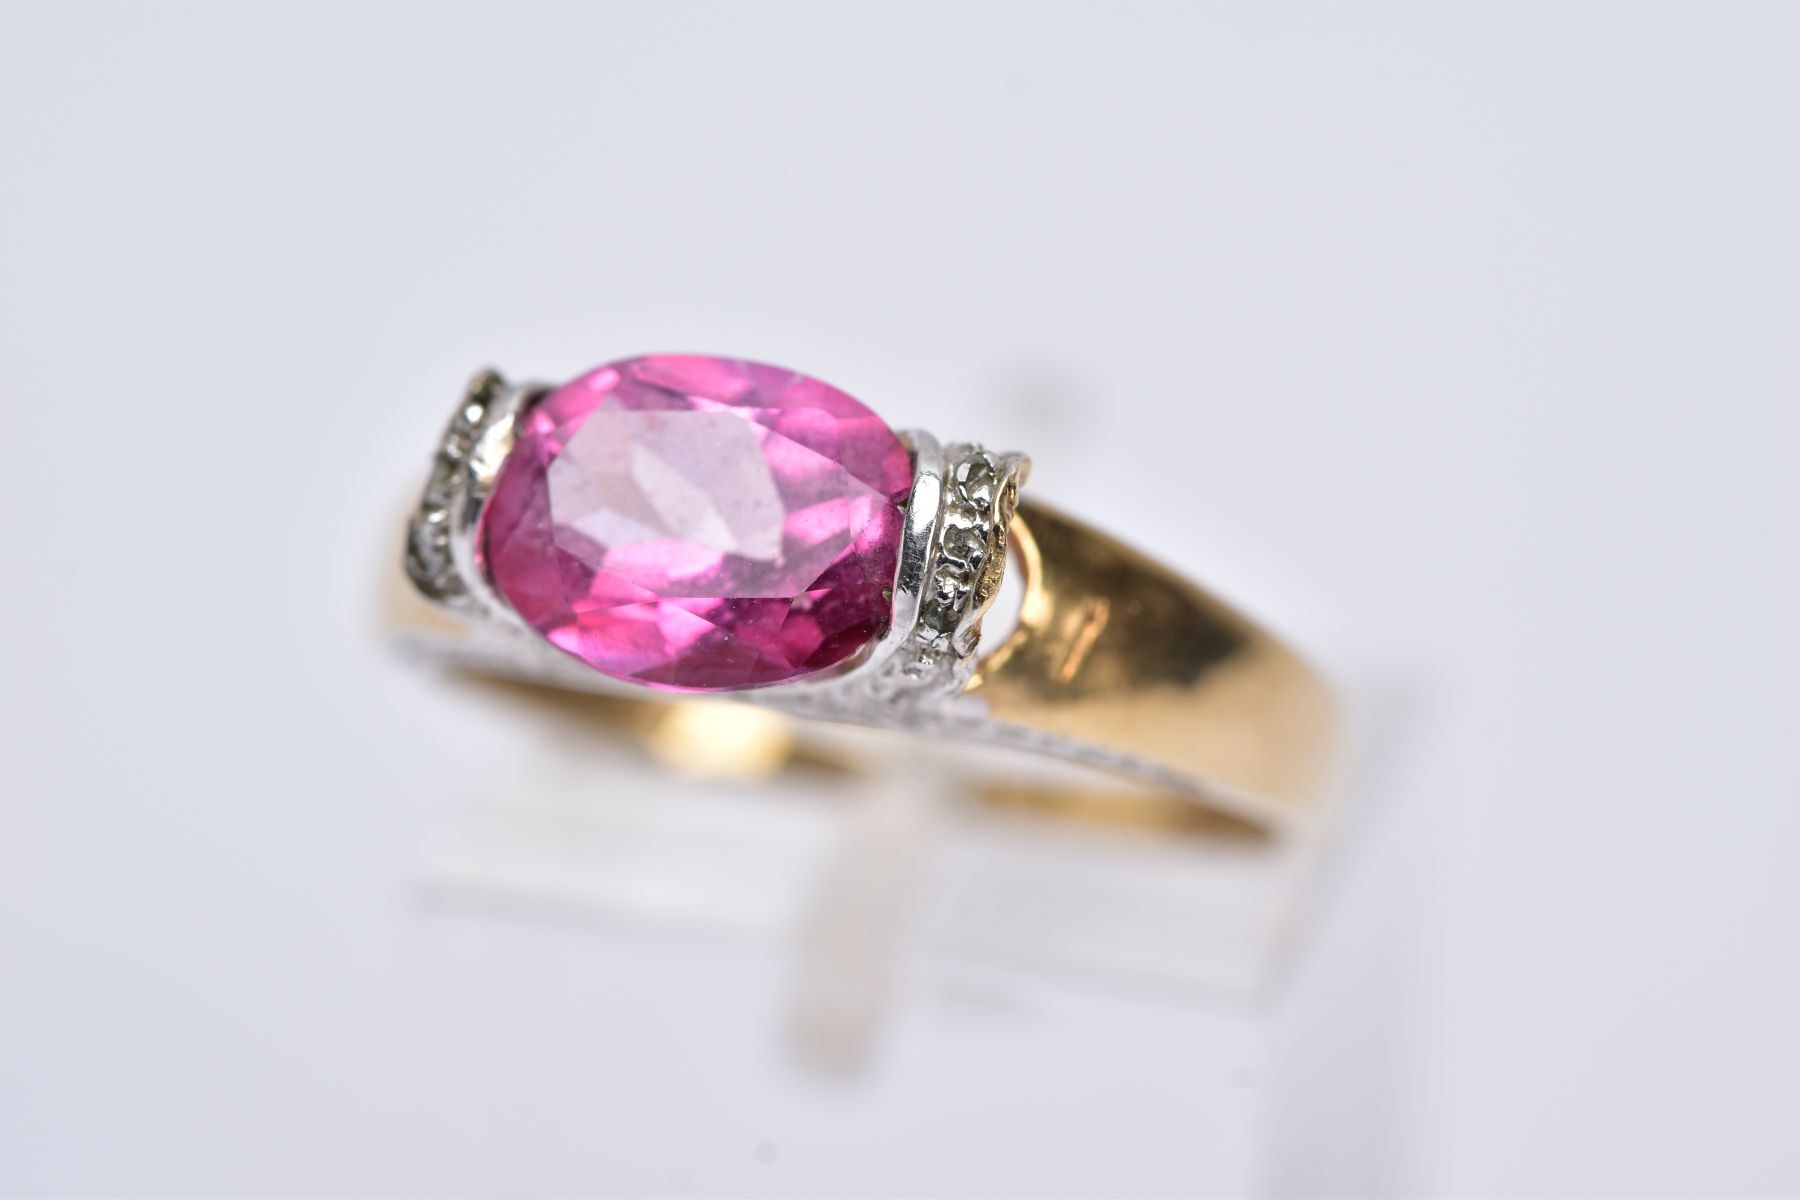 A 9CT GOLD PINK TOPAZ RING, designed with a tension set, oval cut pink topaz, single cut diamond